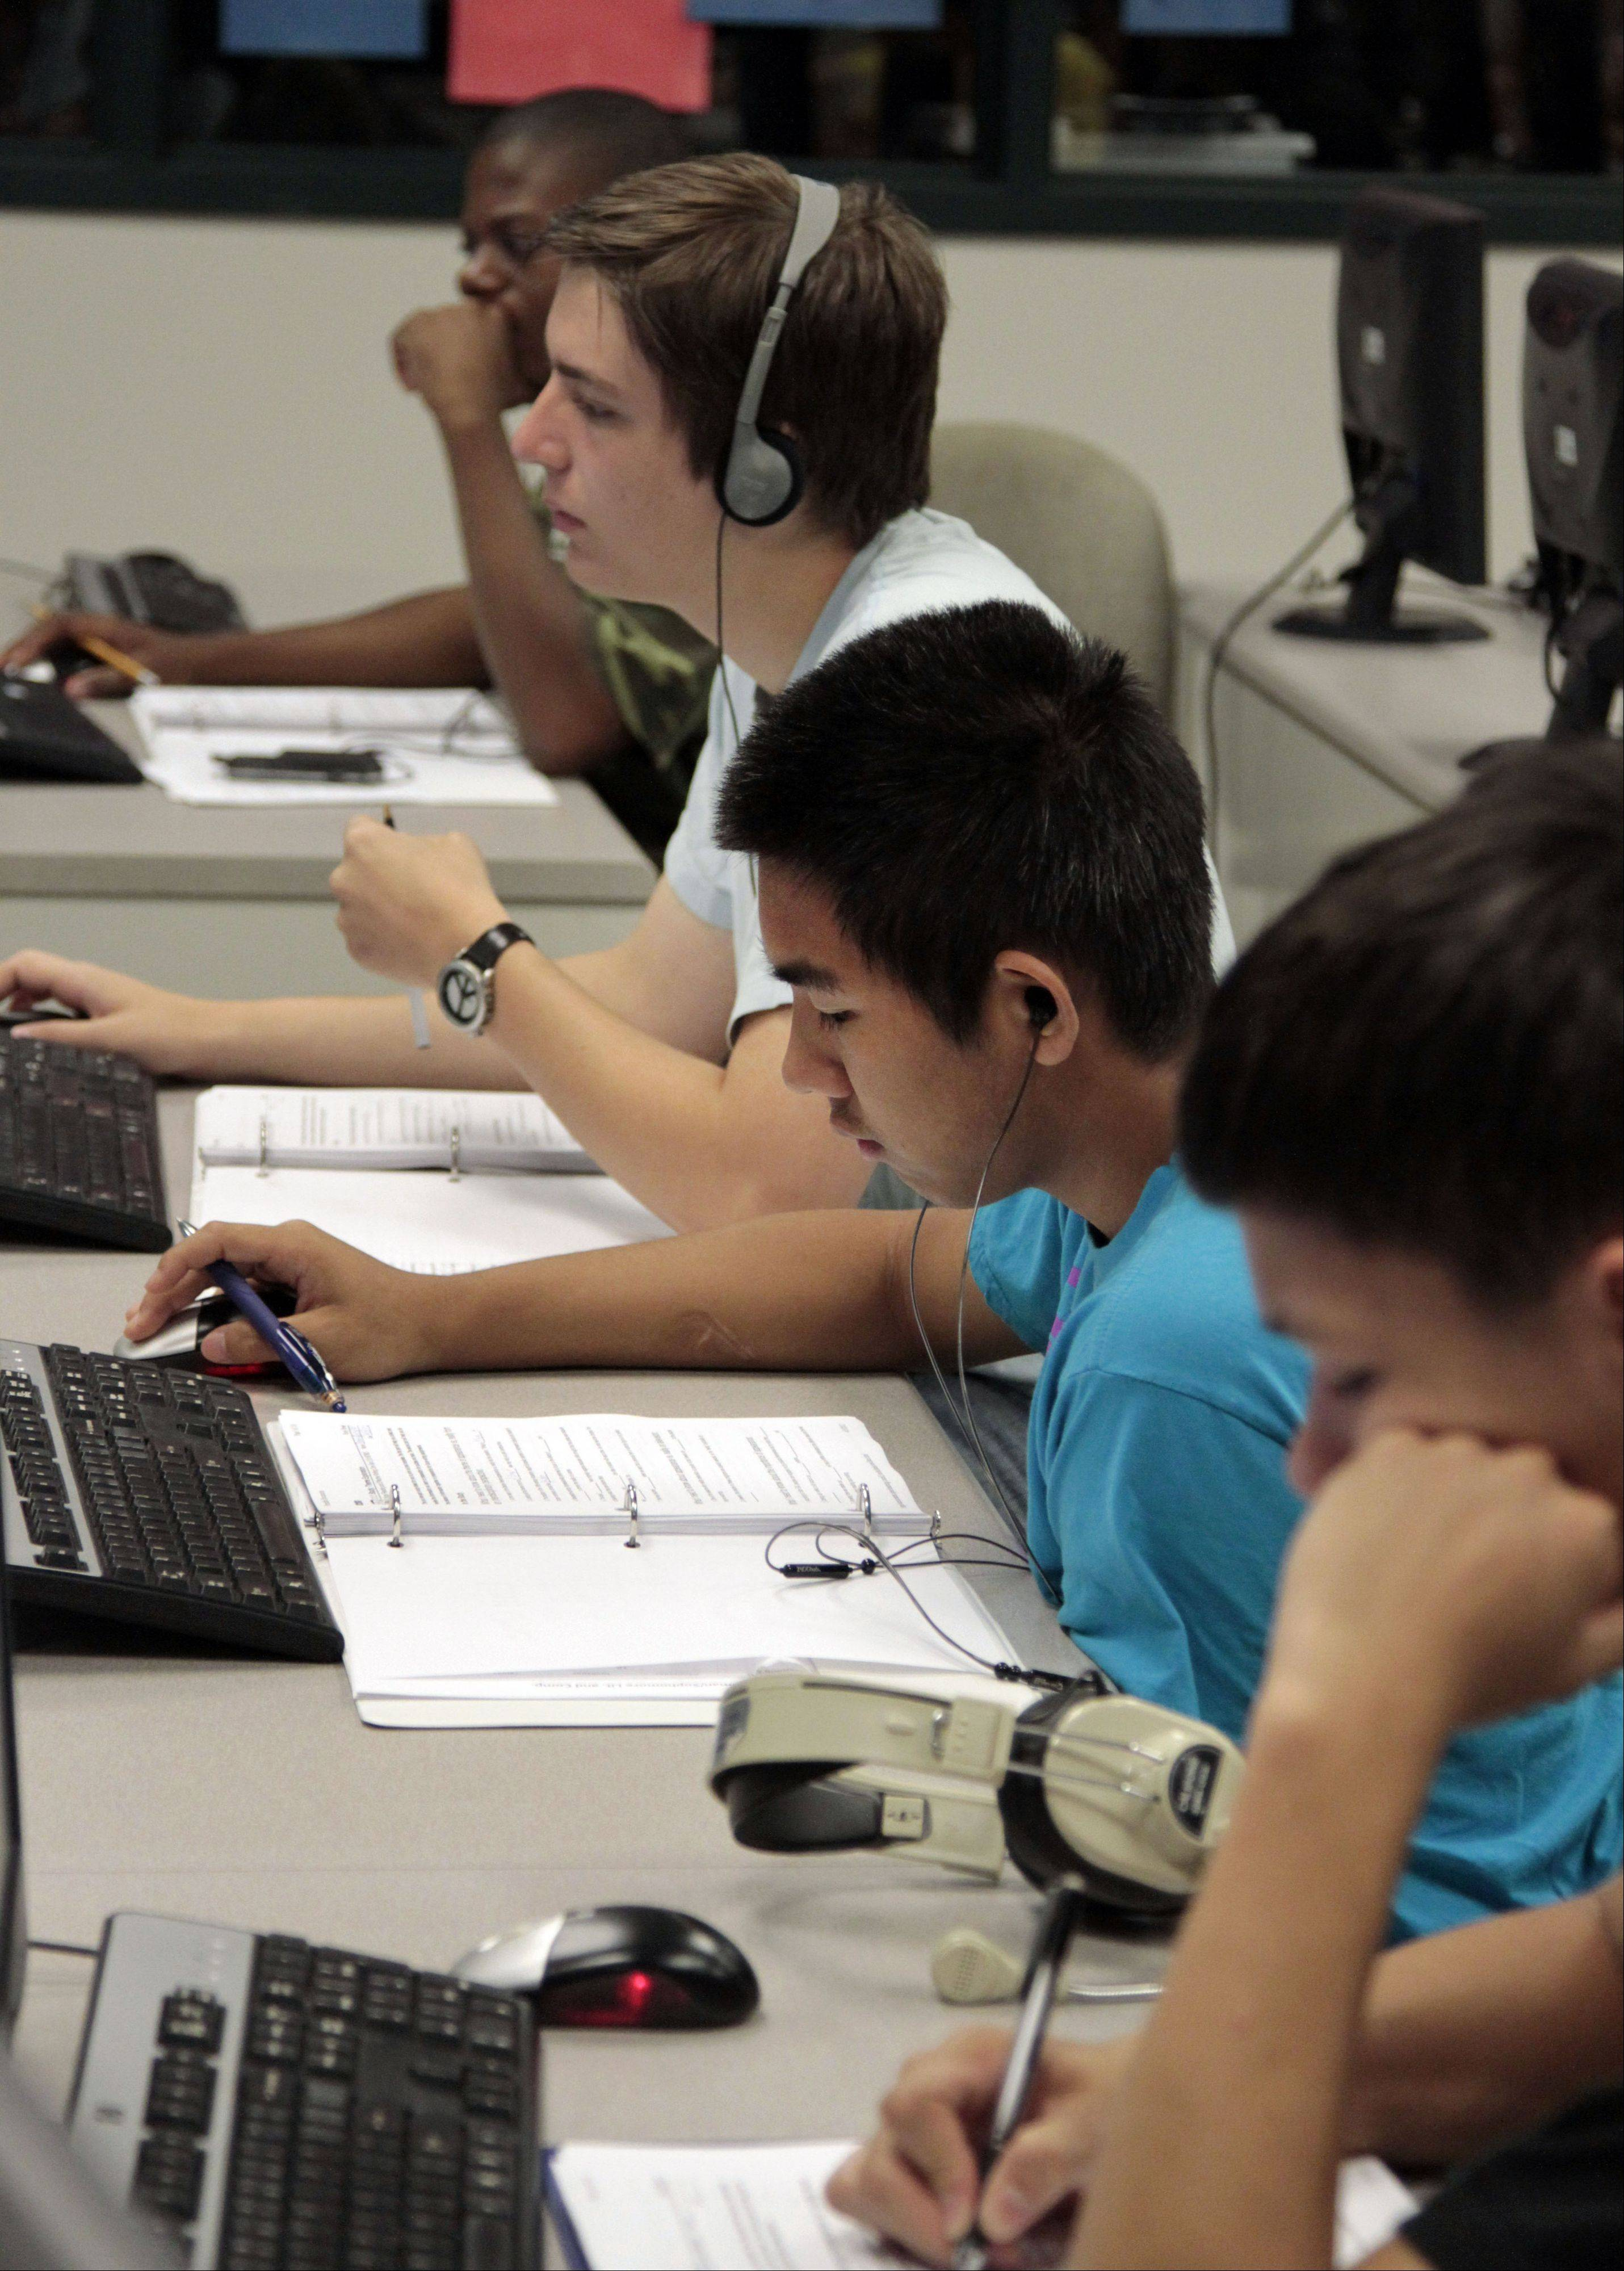 For the first time, online English classes are offered this summer at Vernon Hills High School. The students work in a computer lab at their own pace. Teachers are there to guide them, help when needed and occasionally step in with some group lessons.